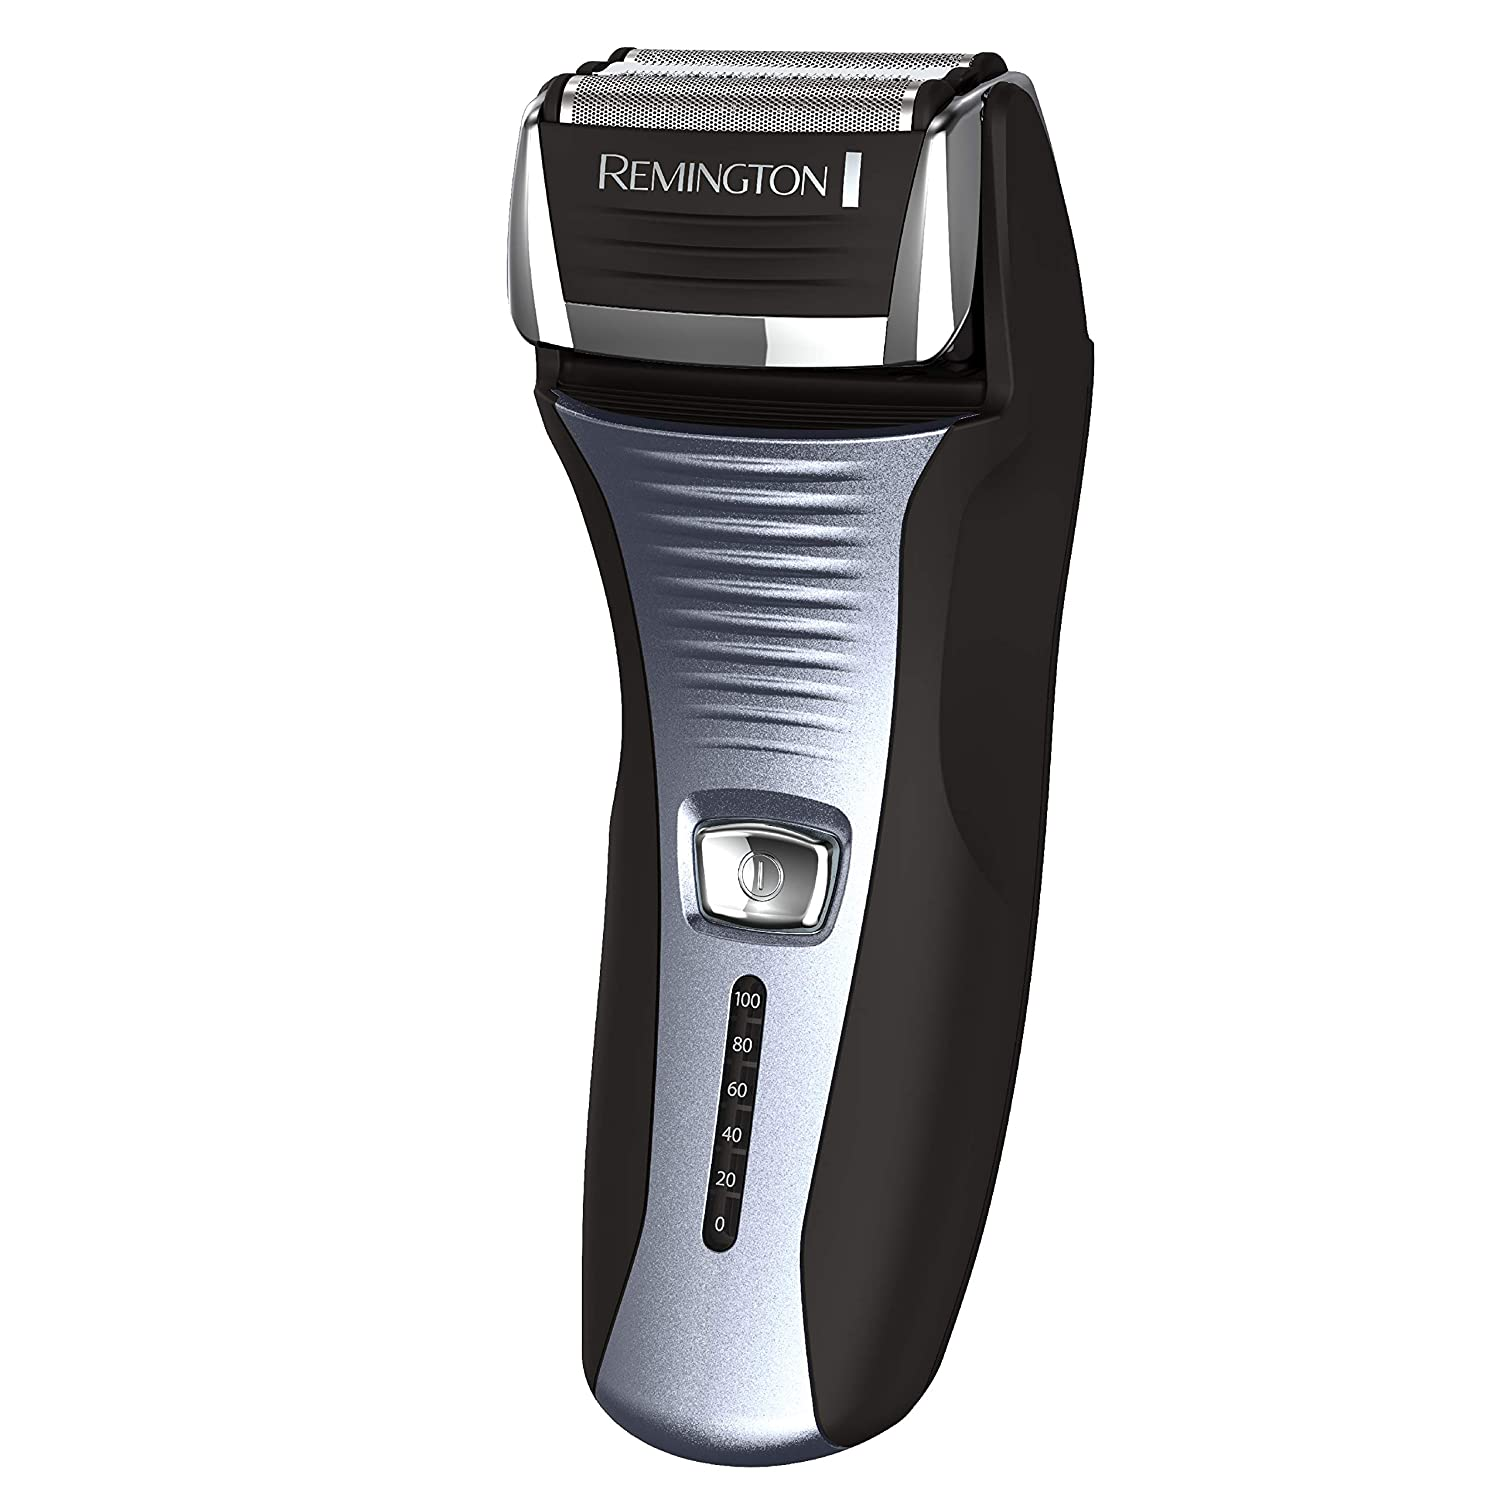 Best Foil Shaver in 2020: Reviews & Buying Guide 2